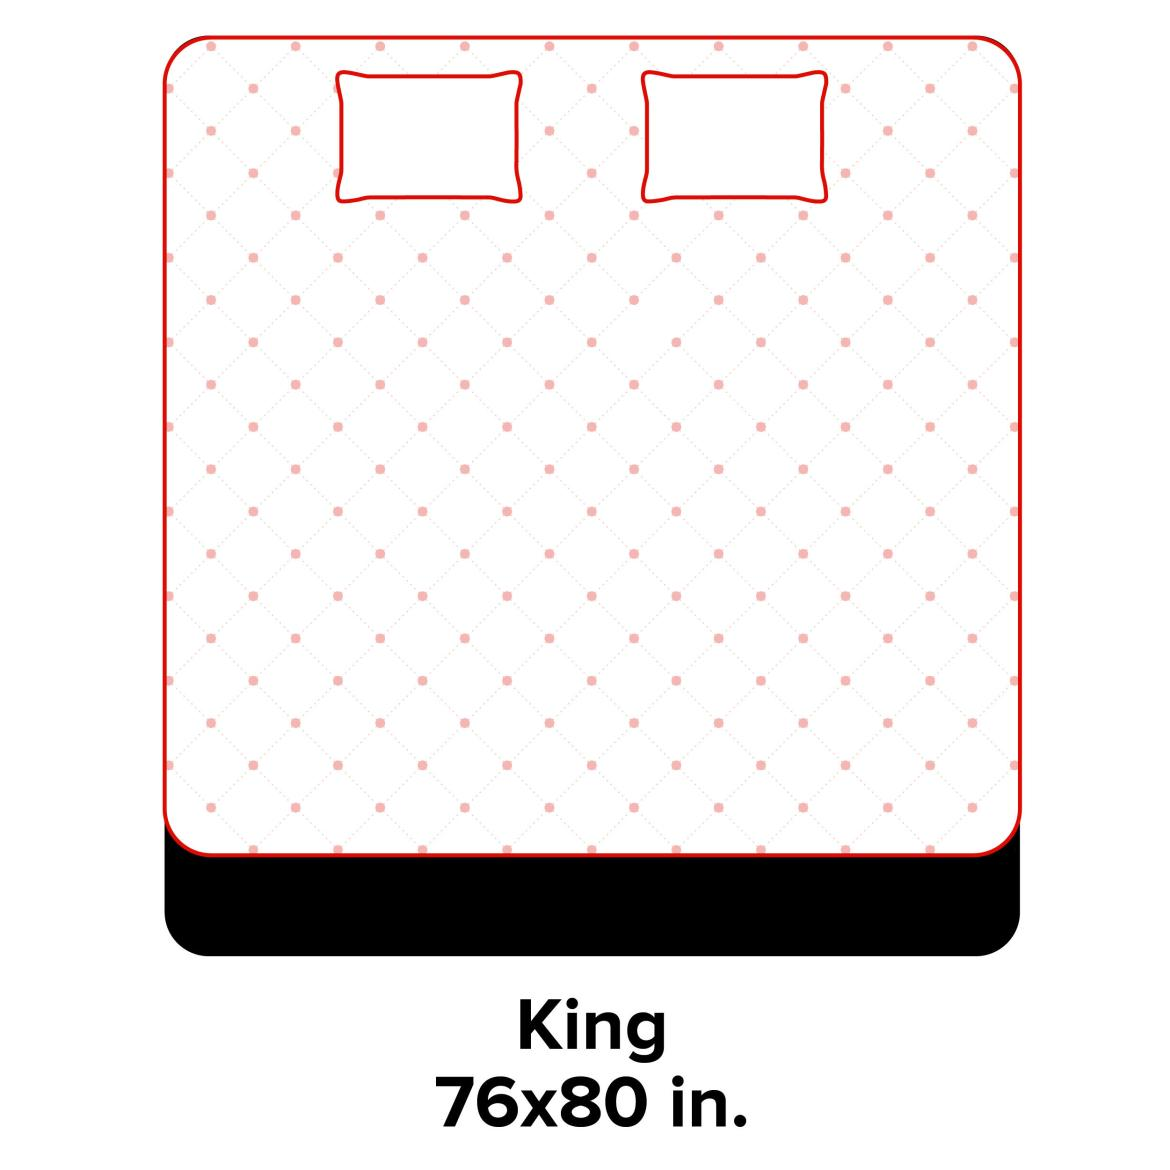 mattress-size-guide-graphic-cnet-king